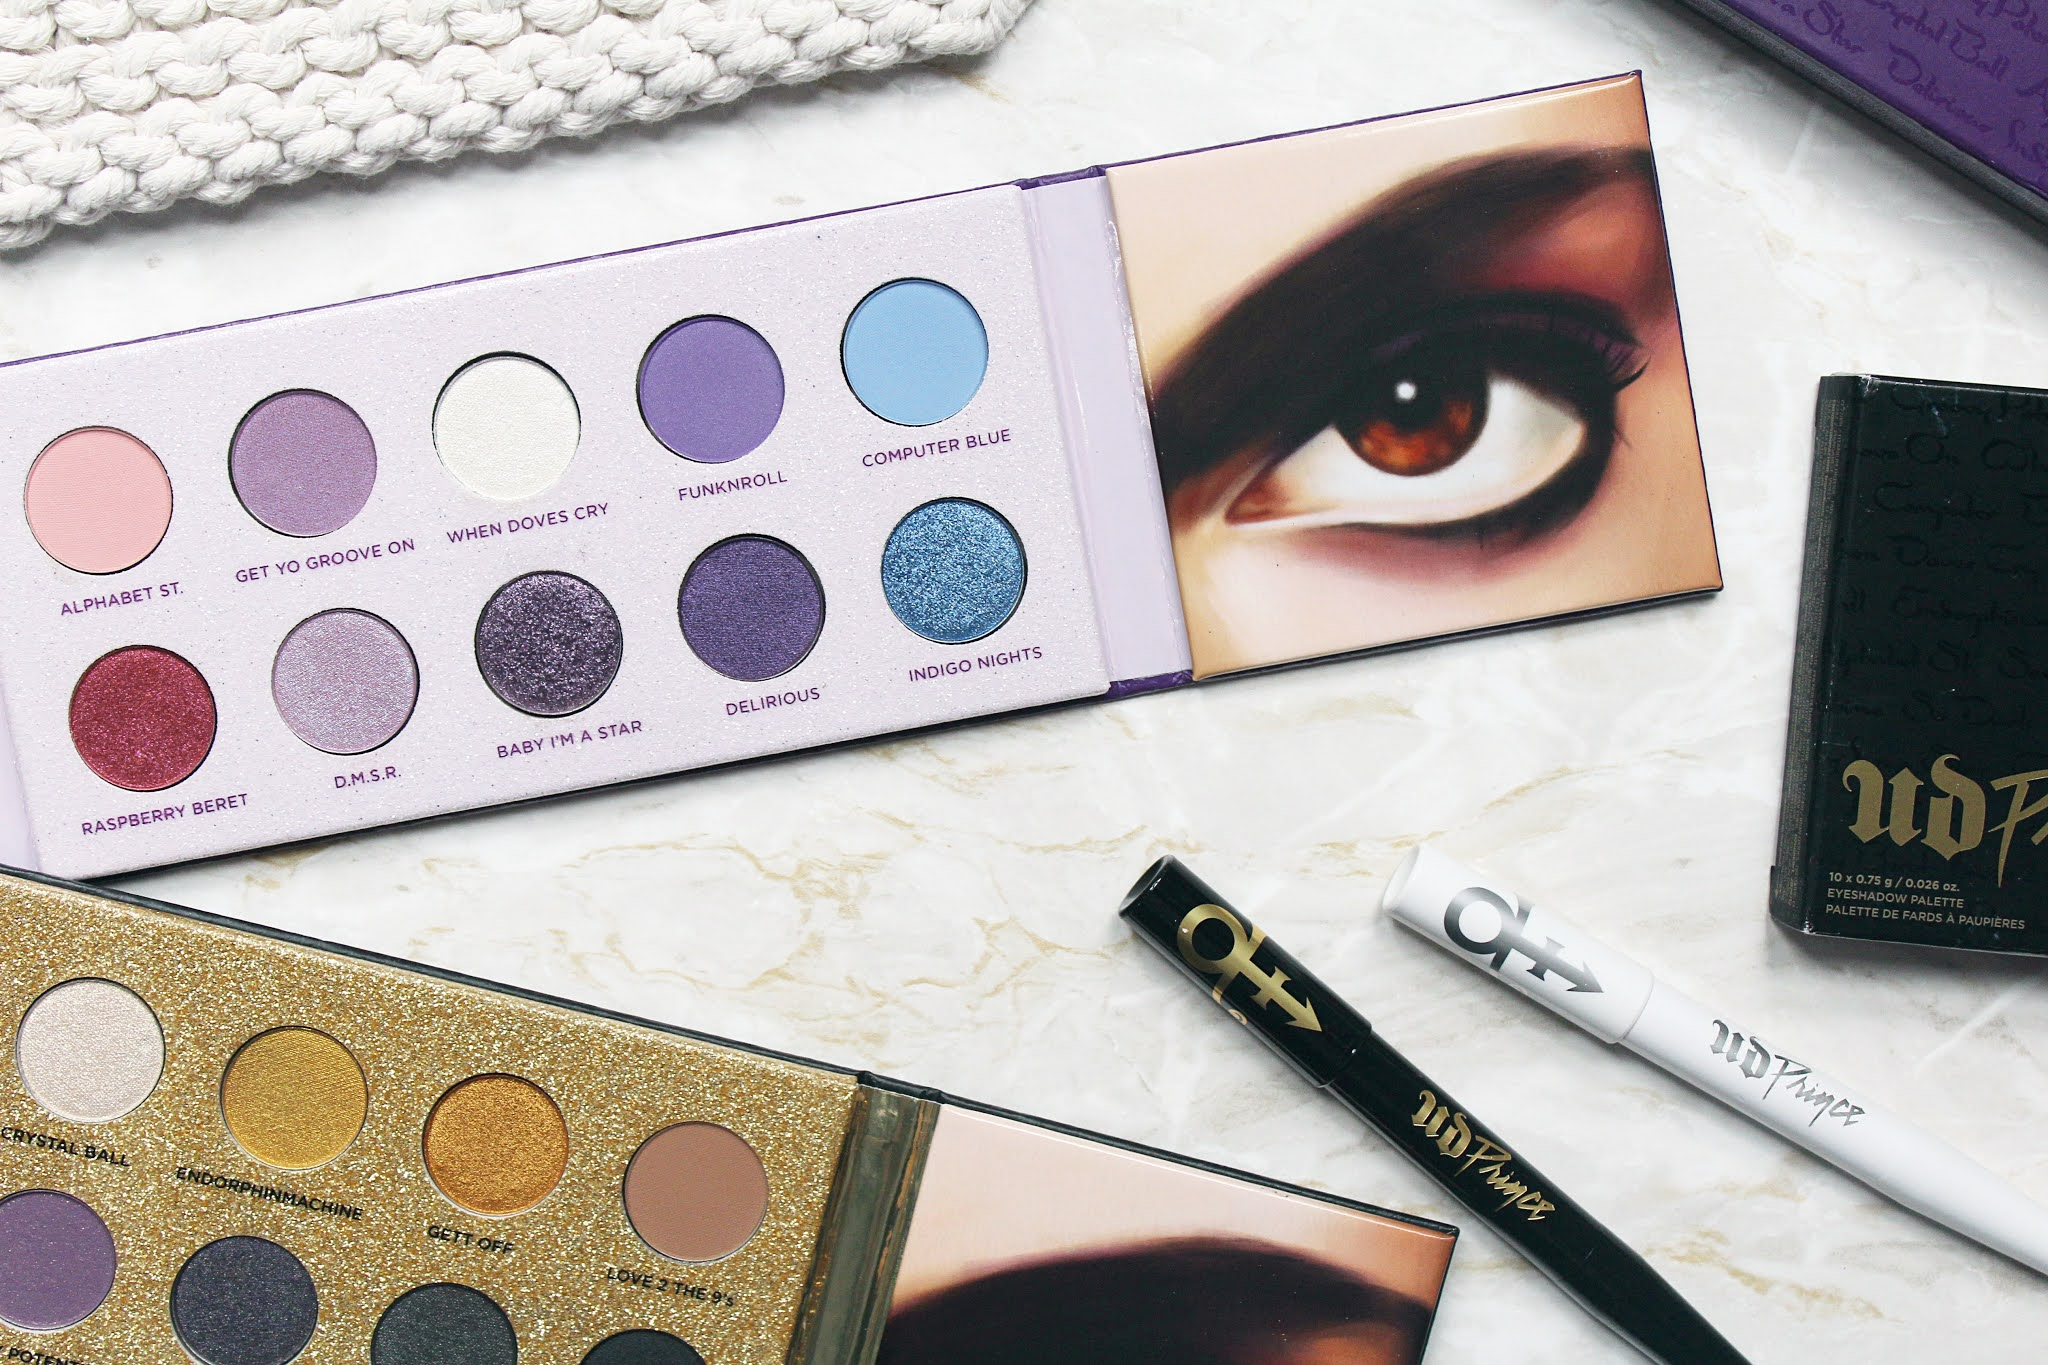 Urban Decay x Prince Collection Review & Swatches